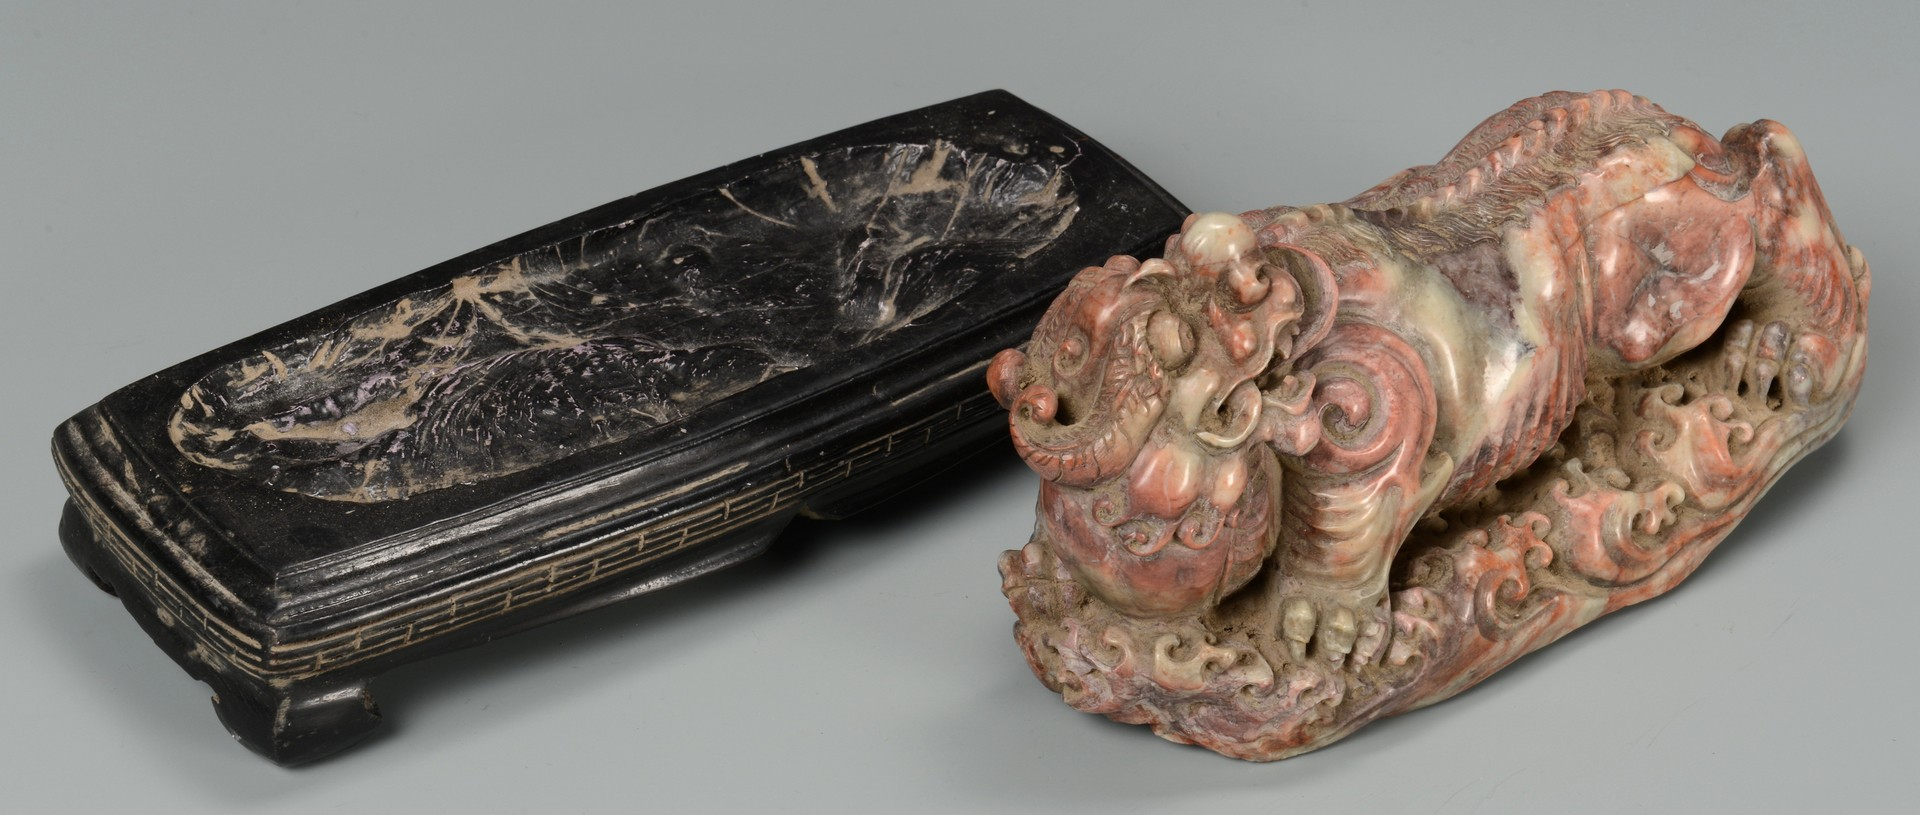 Lot 3594183: 3 Carved Chinese Hardstone Items